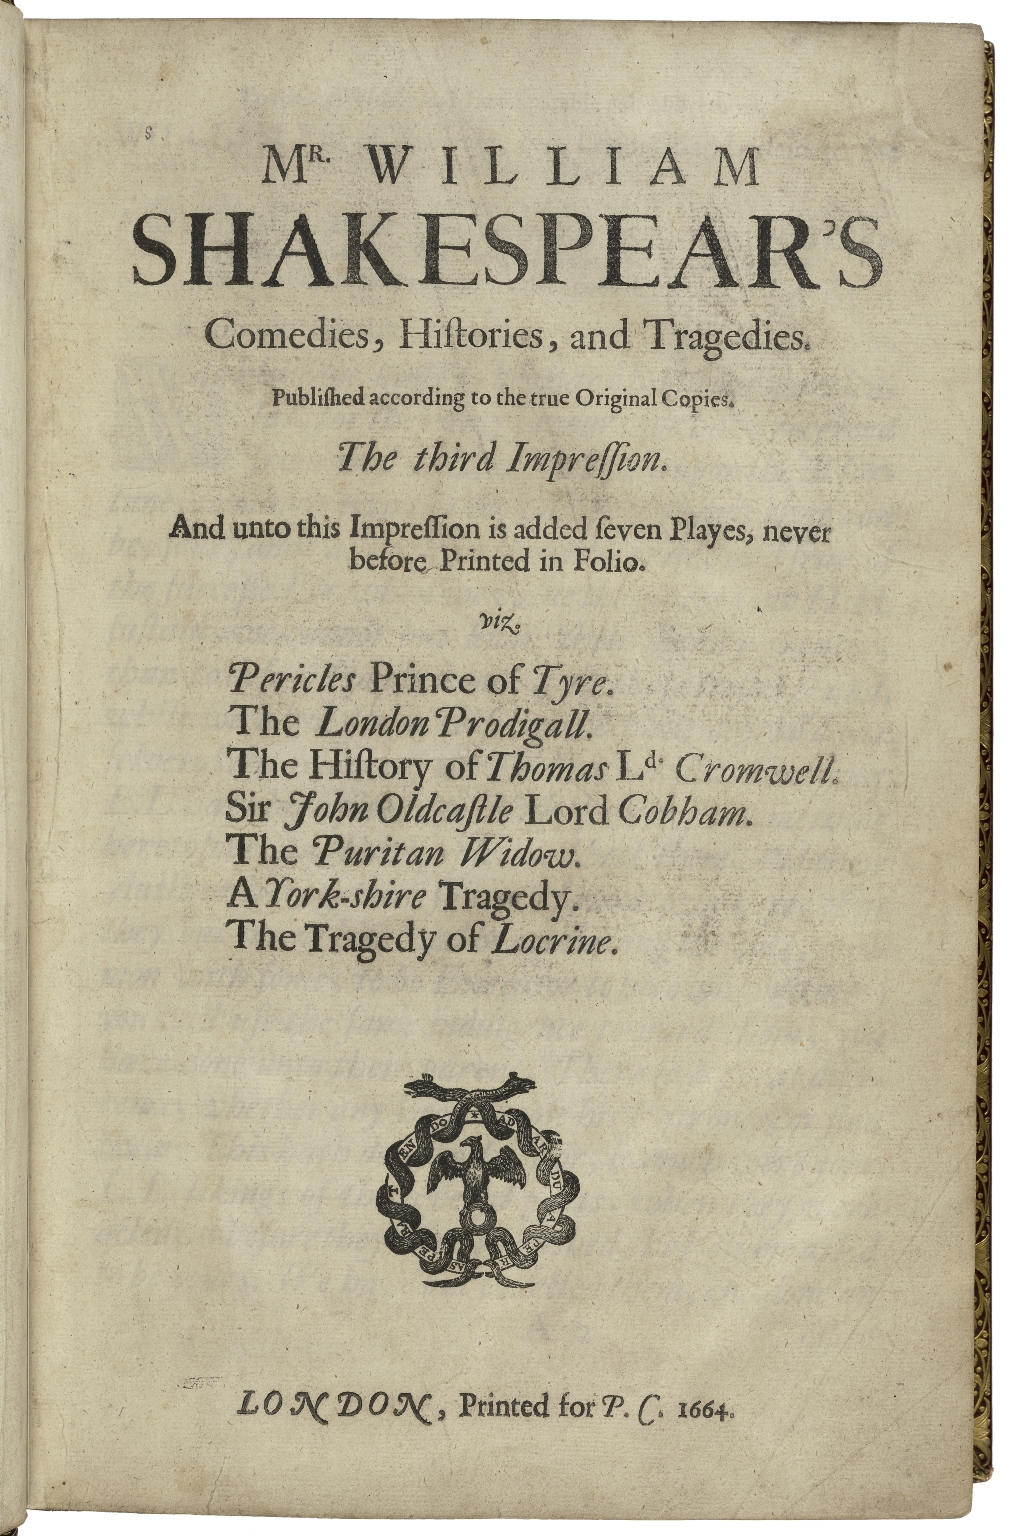 [Plays] Mr. William Shakespear's comedies, histories, and tragedies : published according to the true original copies.